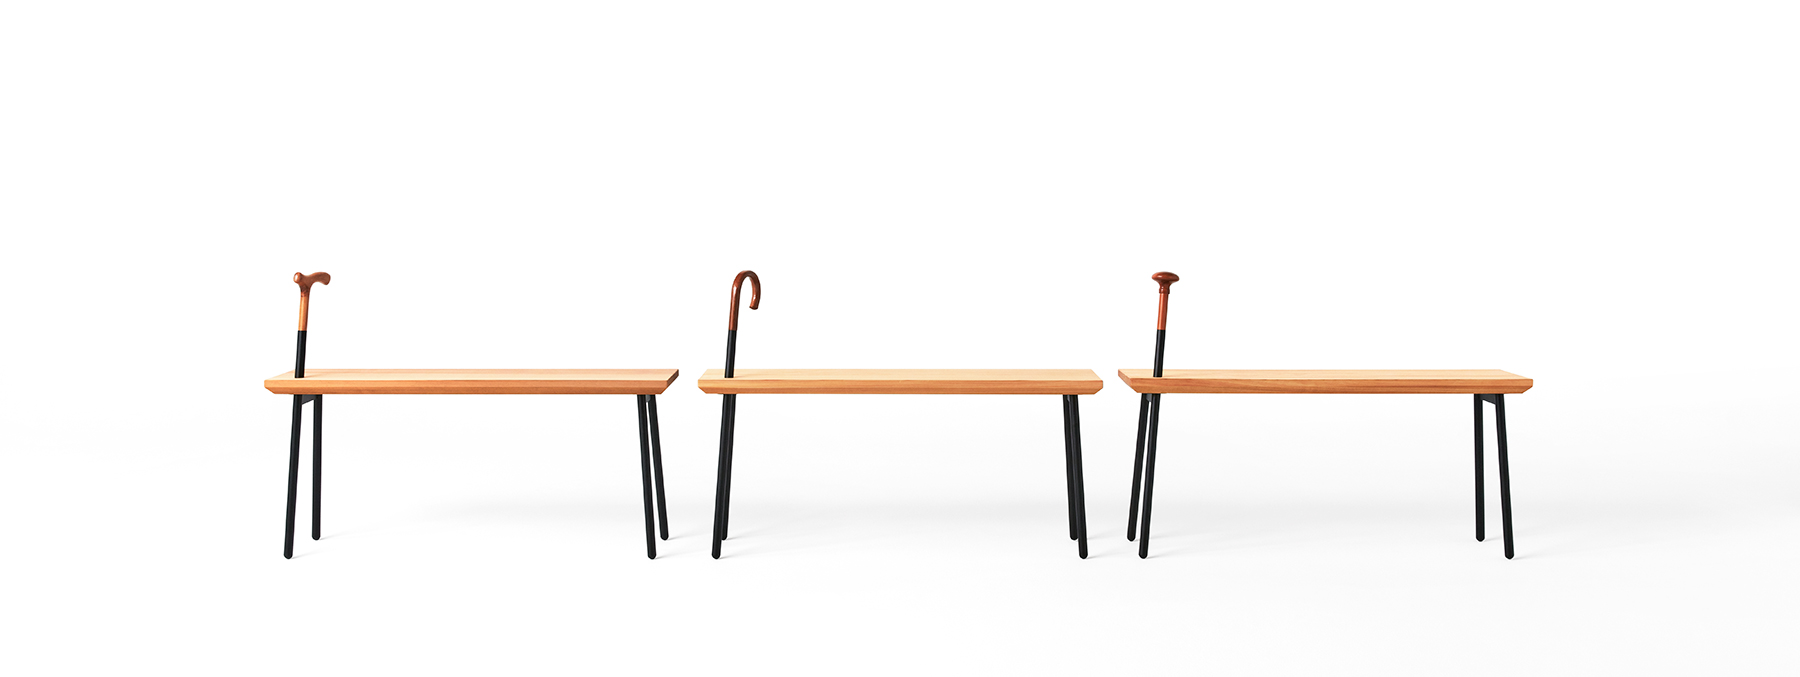 deco_torafu-architects-dozo-bench